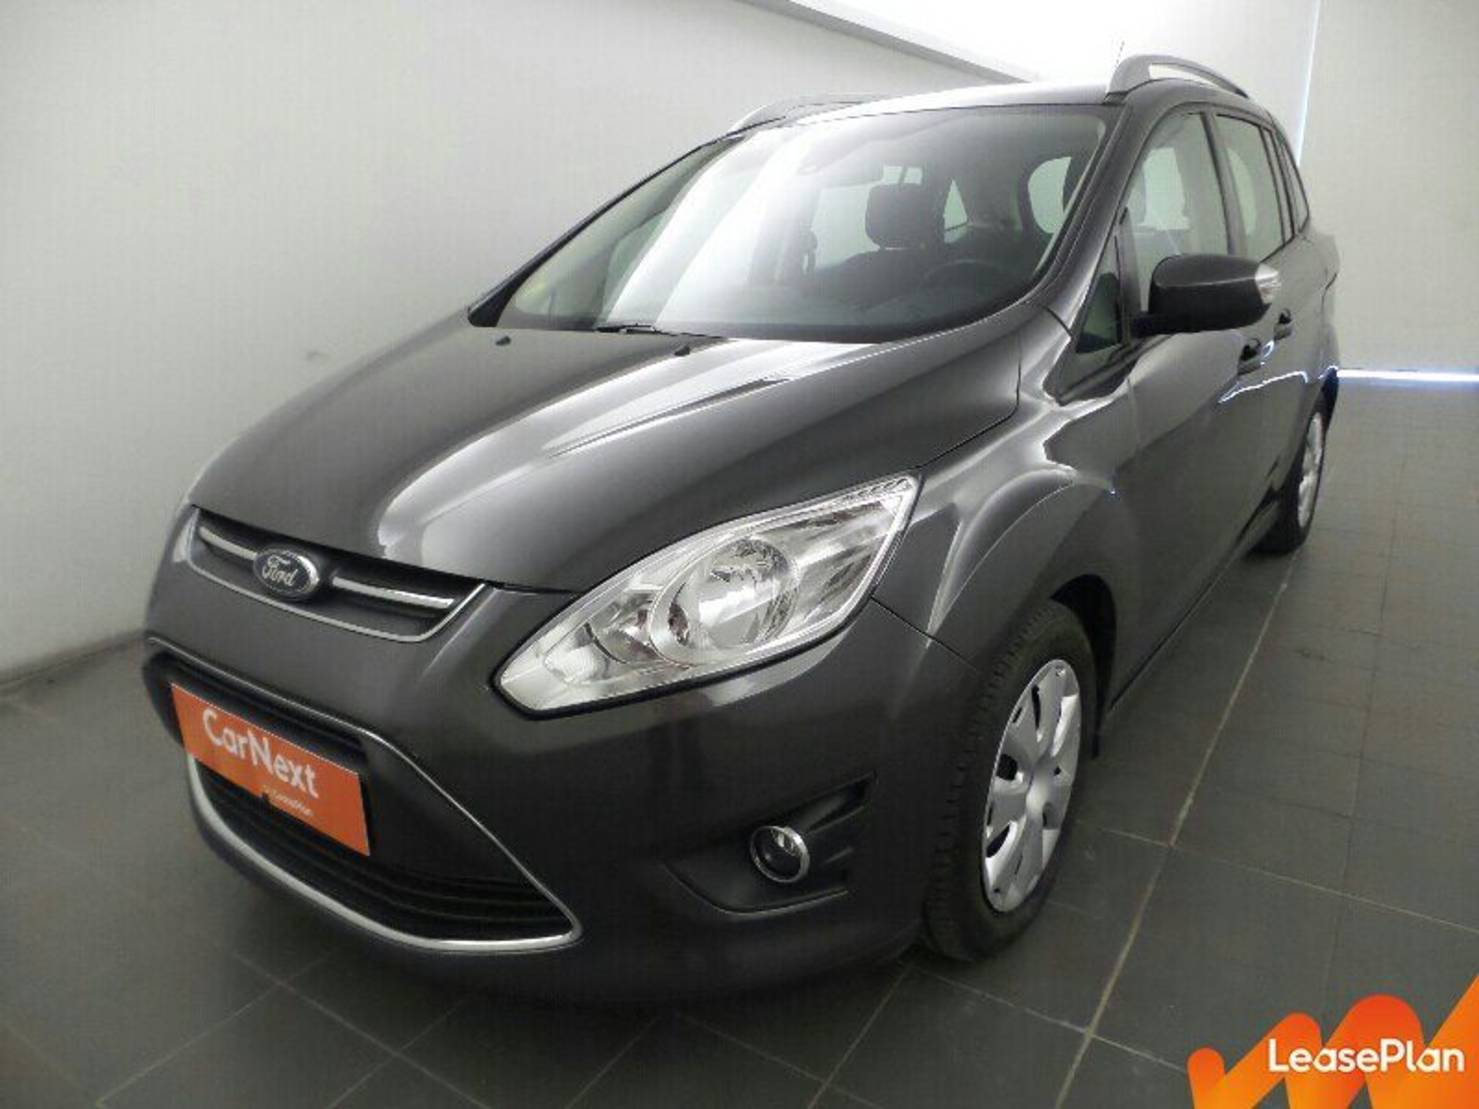 Ford Grand C-Max 1.6 TDCI 115 FAP S&S, Business Nav detail1